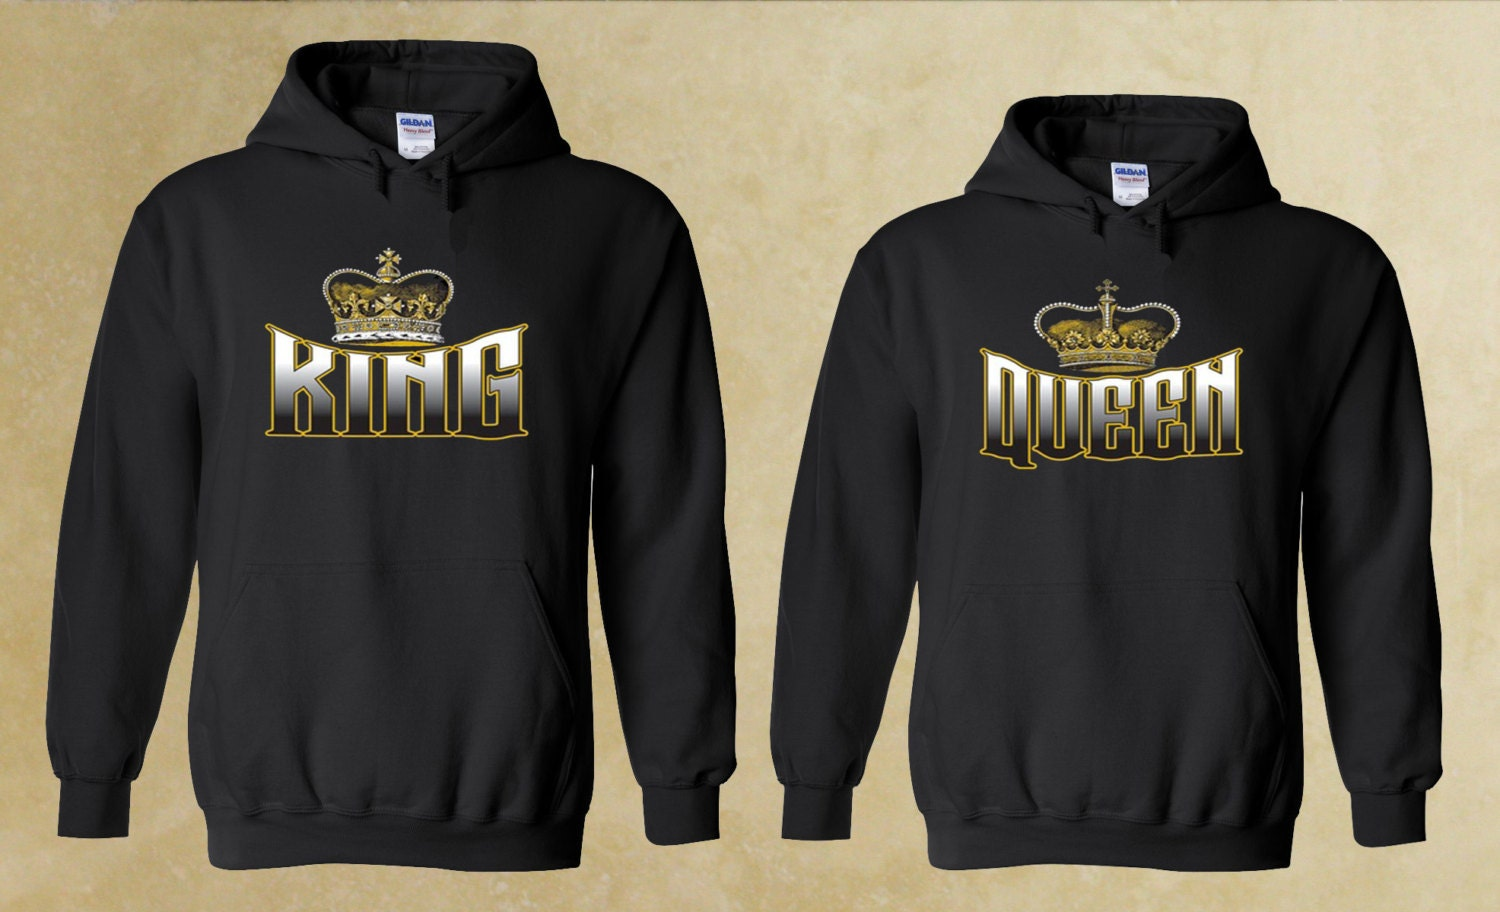 king and queen couple hoodie by forevercustomtees on etsy. Black Bedroom Furniture Sets. Home Design Ideas